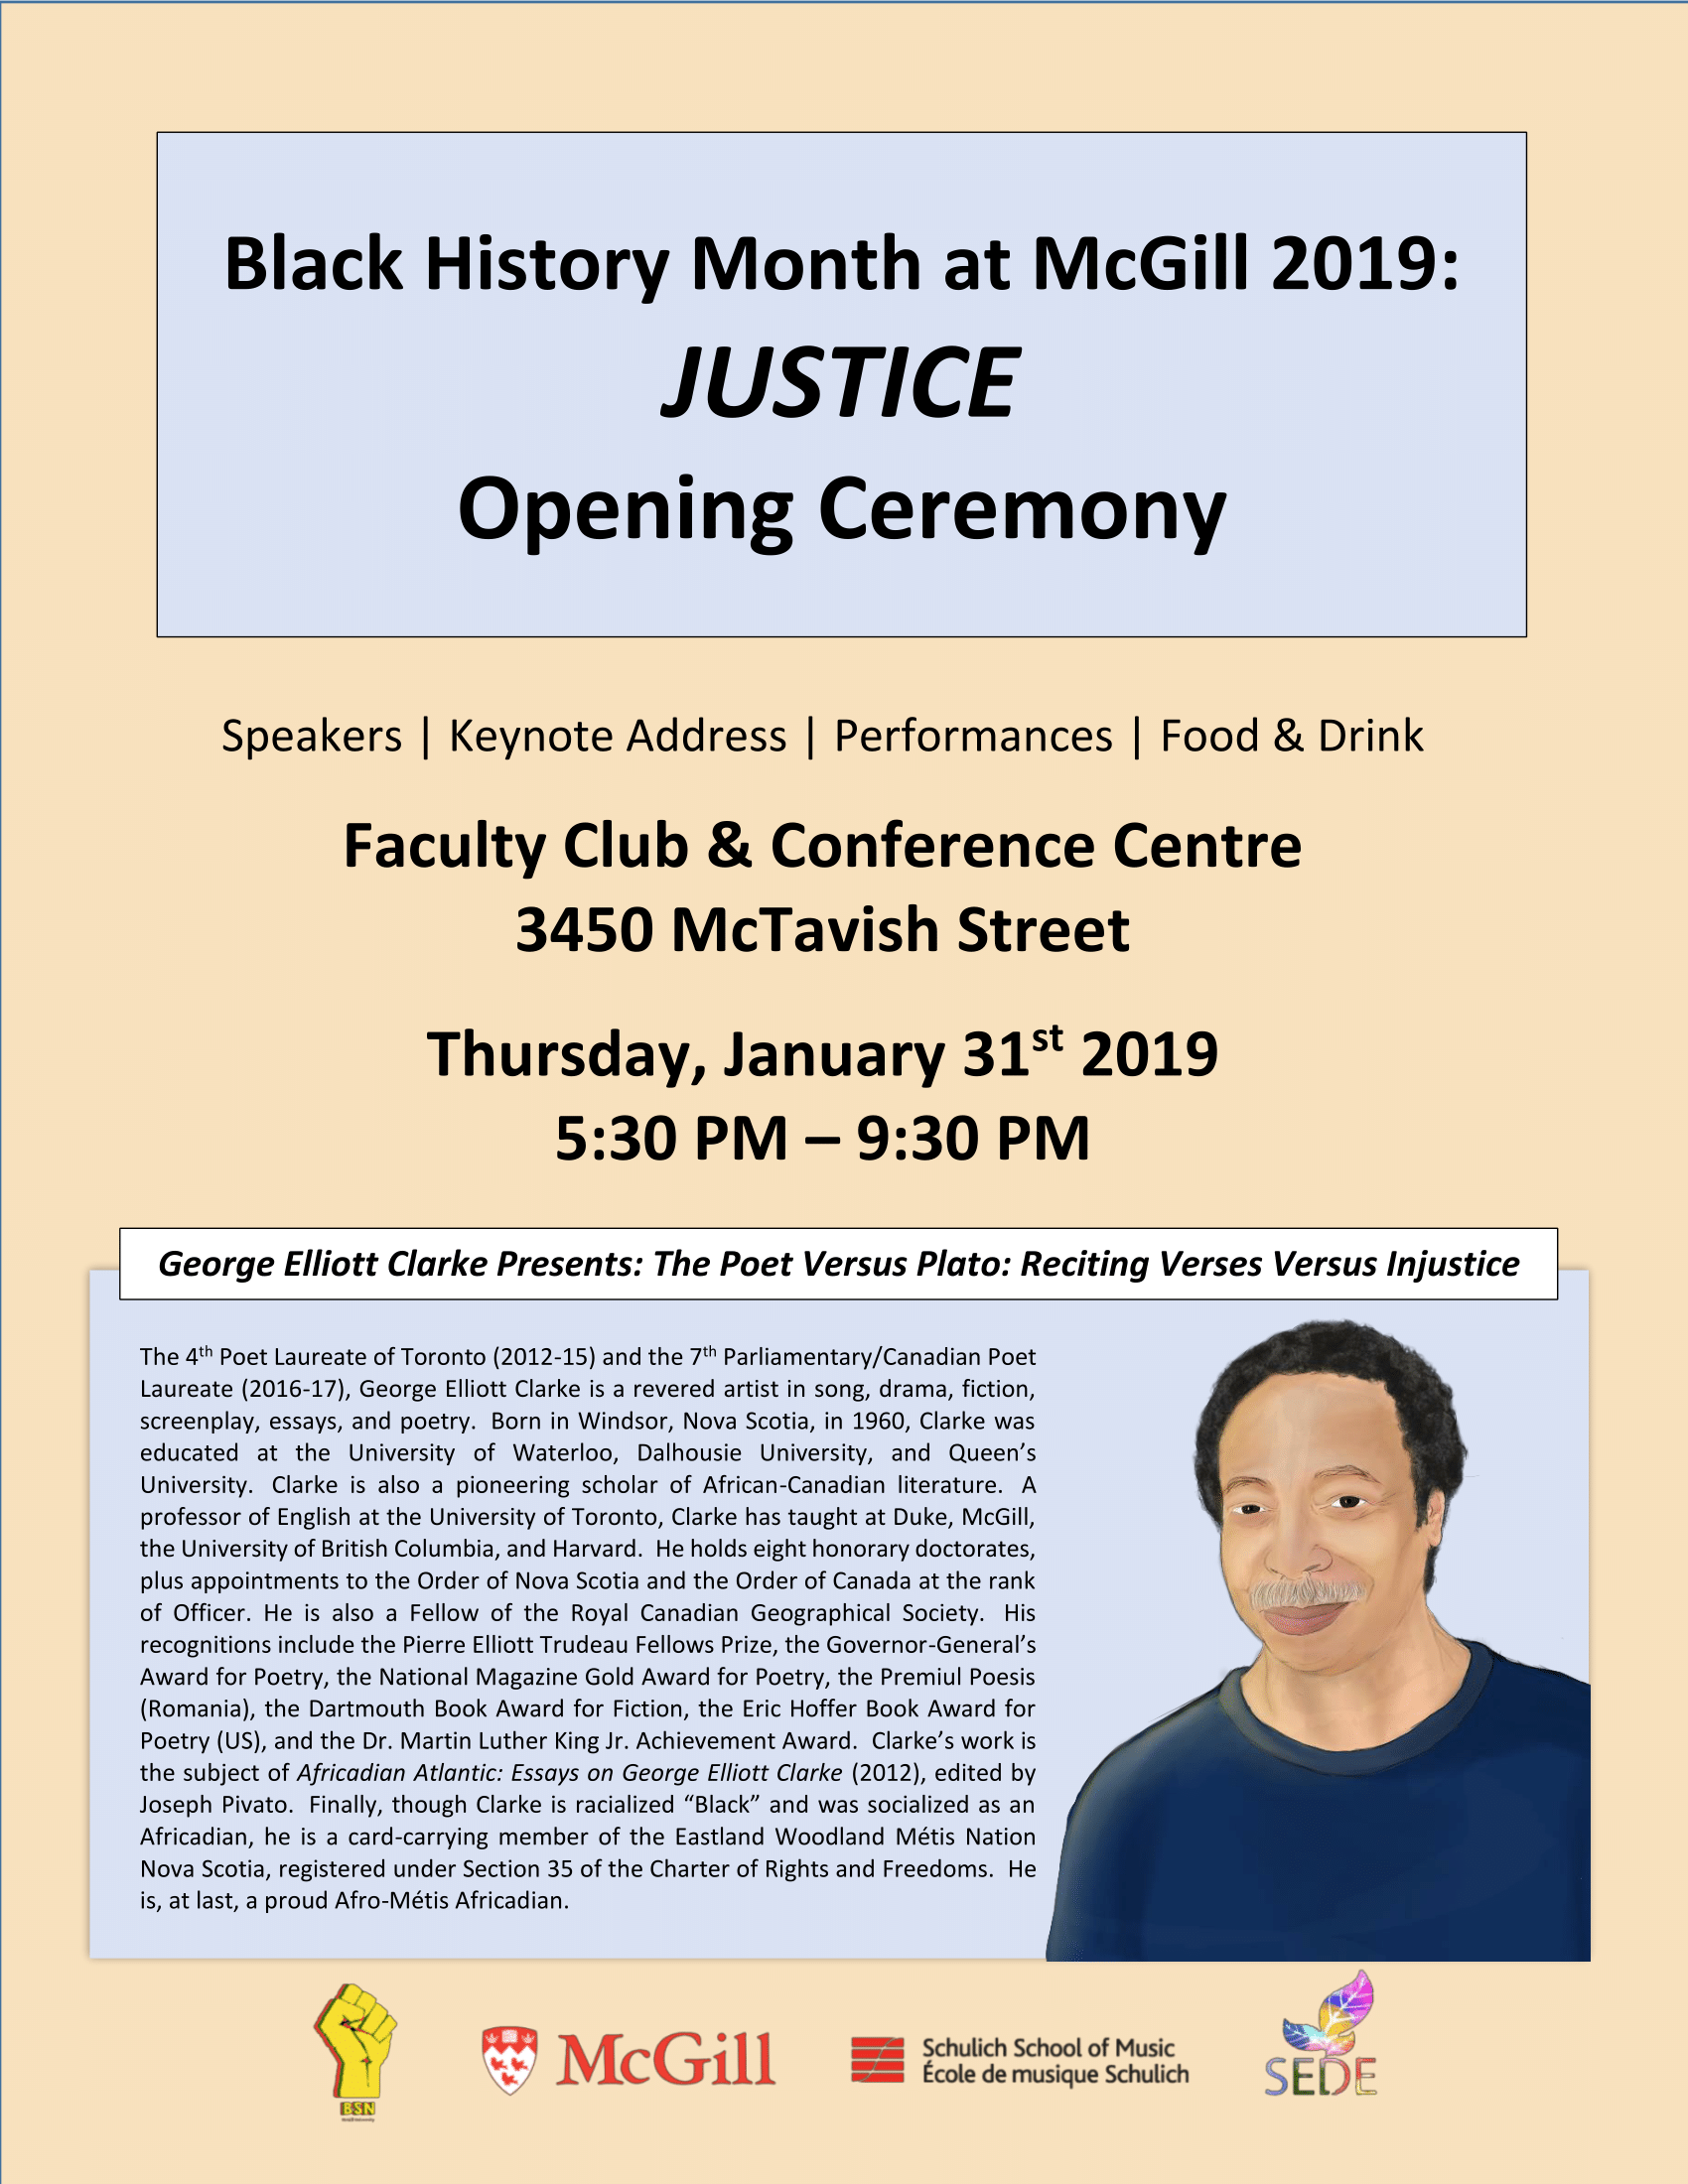 A portrait by poster: Opening ceremony of Black History Month at McGill University, Montreal, 2019.